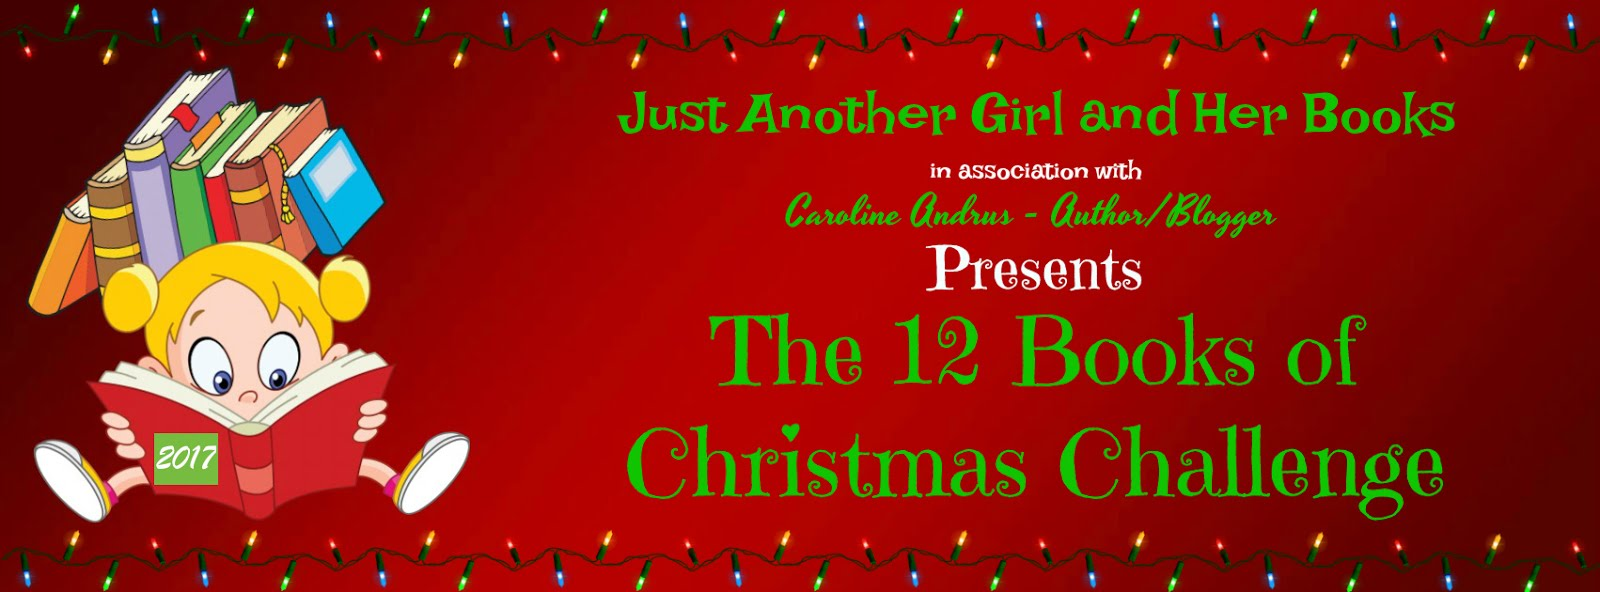 XmasBanner2.0 copy